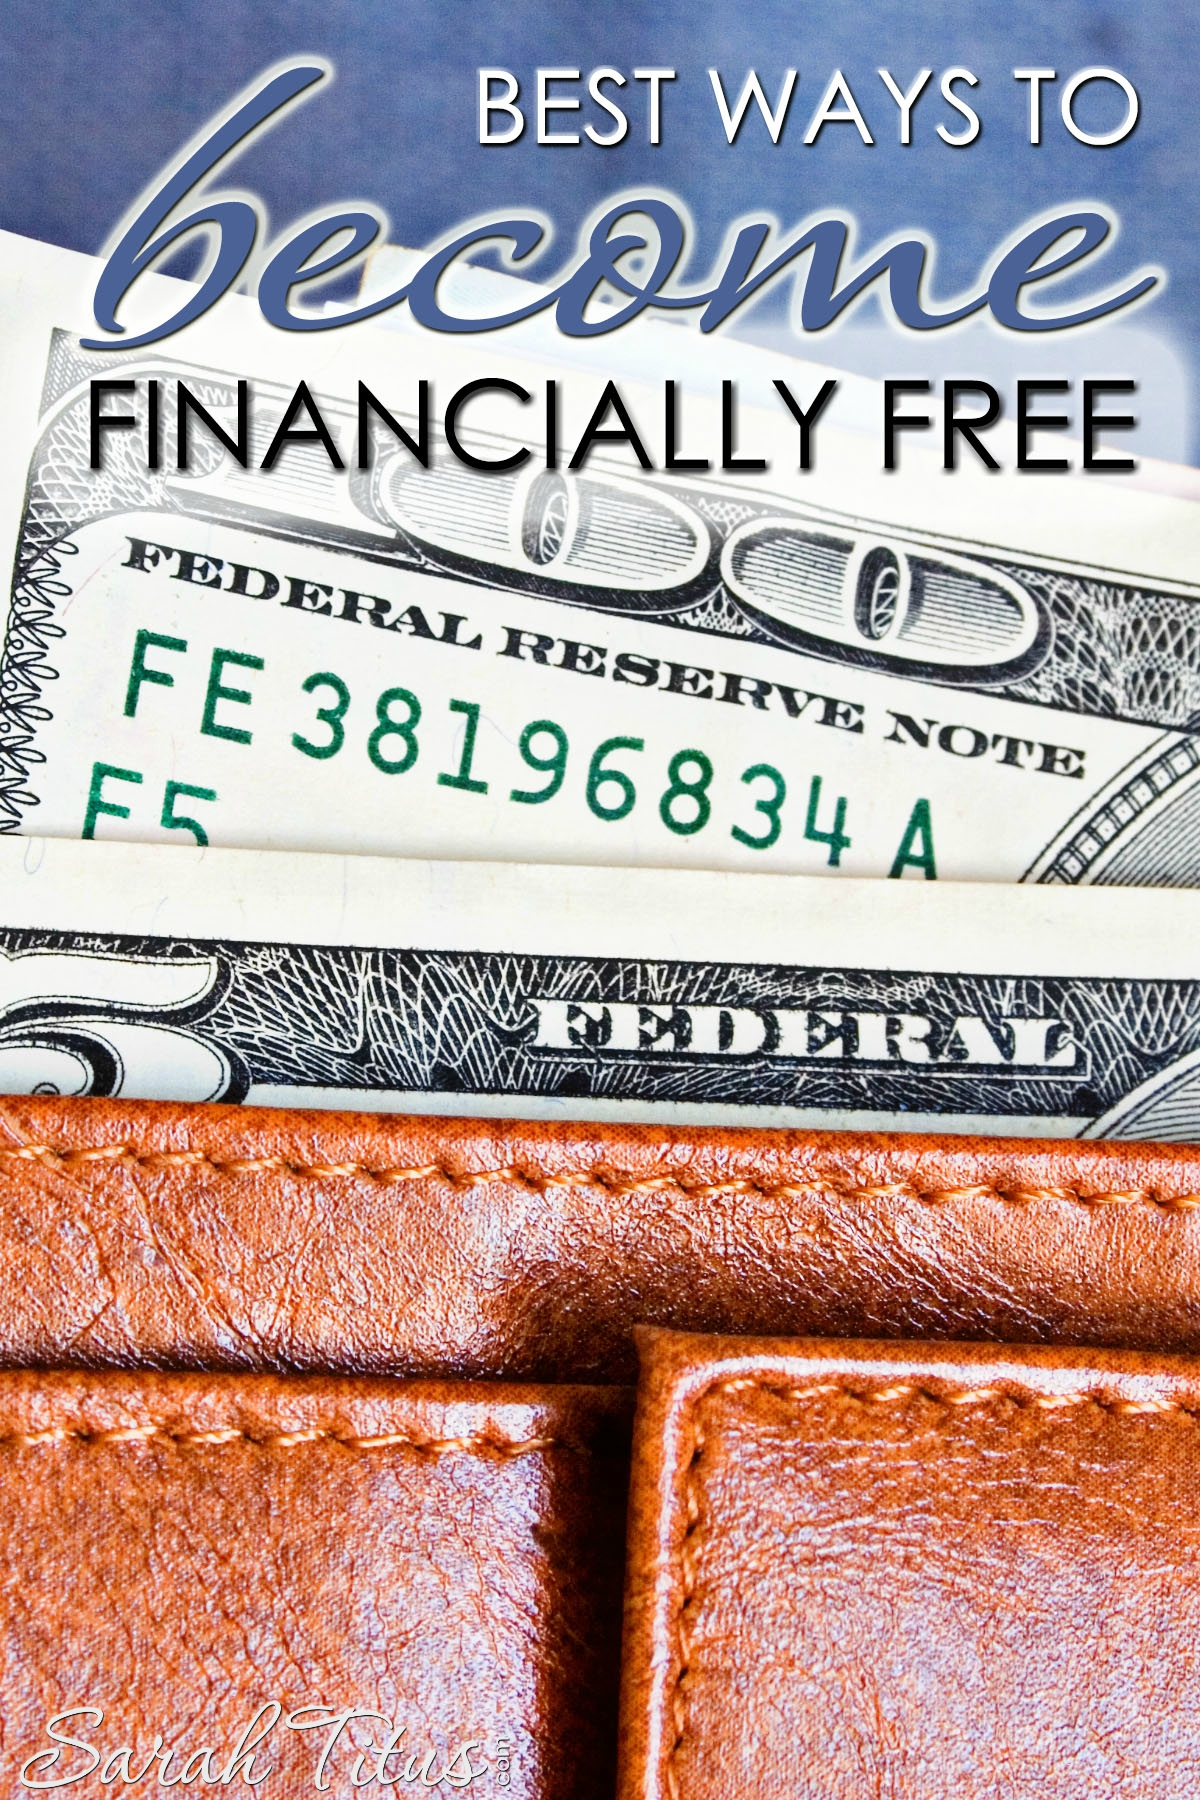 If you're sitting there feeling like a failure, like you'll NEVER get out of debt, be encouraged. You didn't get into debt in a day and you won't get out of debt in a day either, but with reading and practicing these best ways to become financially free, you CAN make it!